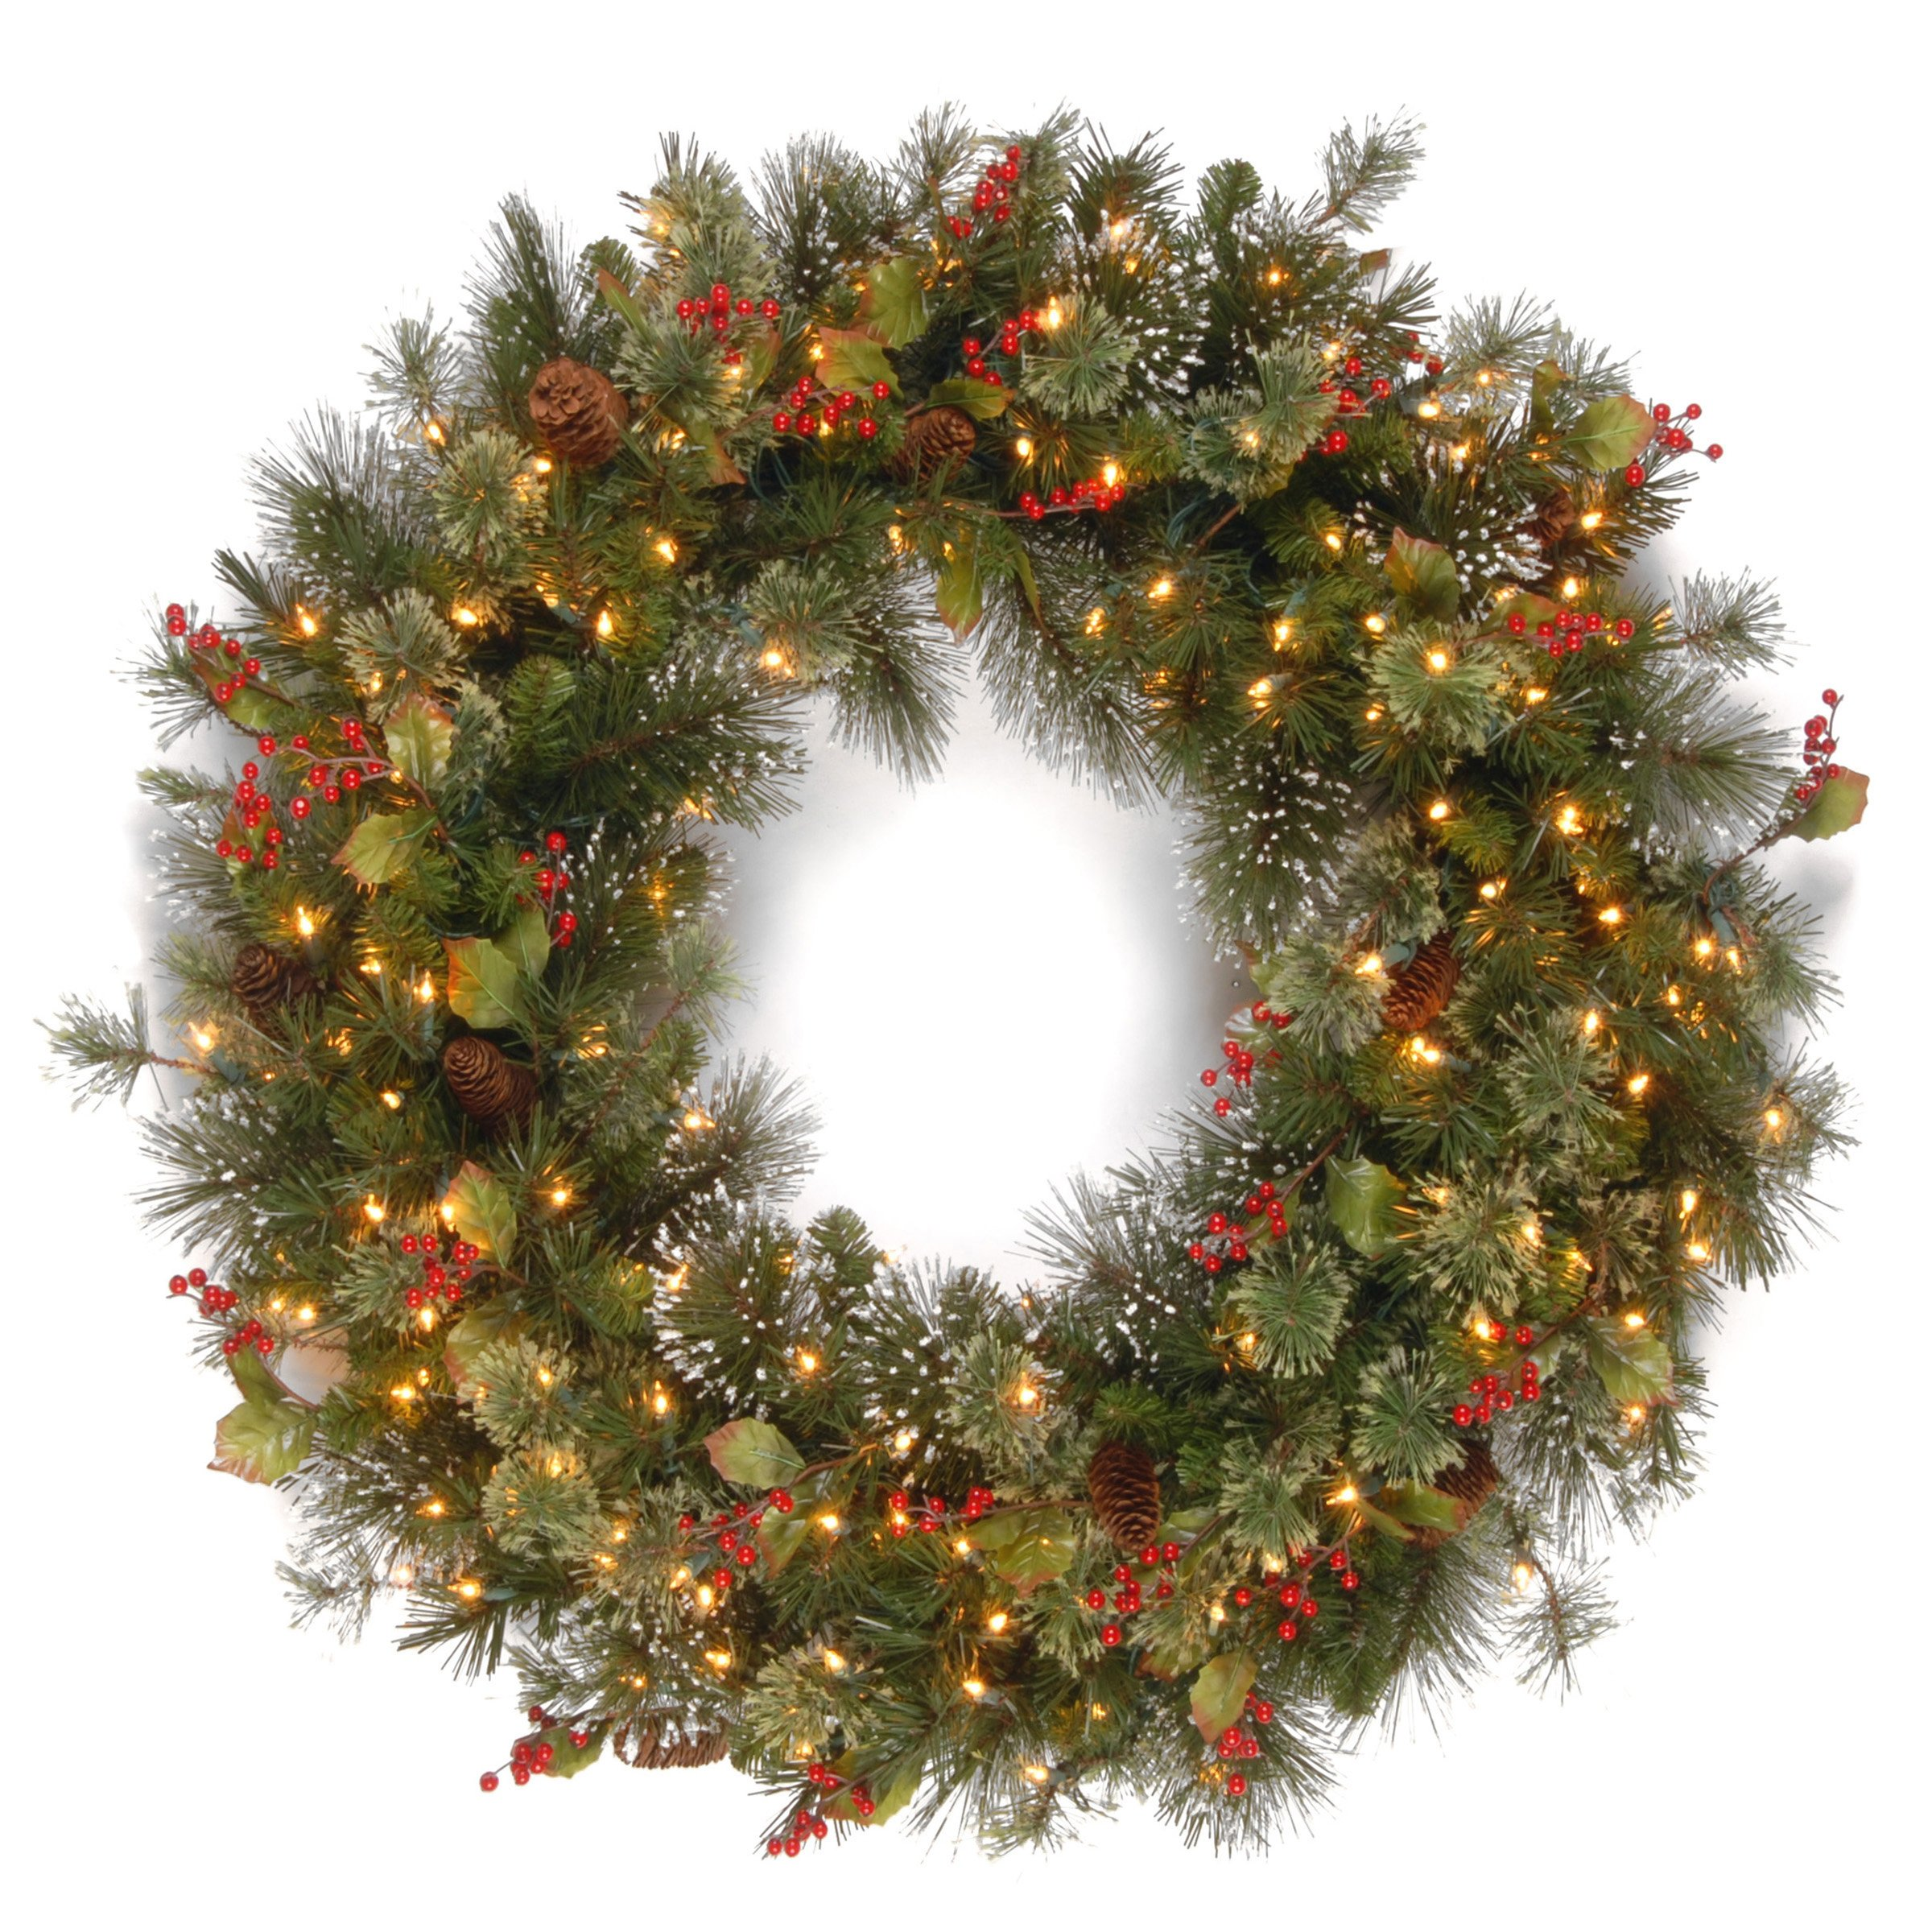 National Tree 48 Inch Wintry Pine Wreath with Cones, Red Berries, Snowflakes and 200 Clear Lights (WP1-300-48W) by National Tree Company